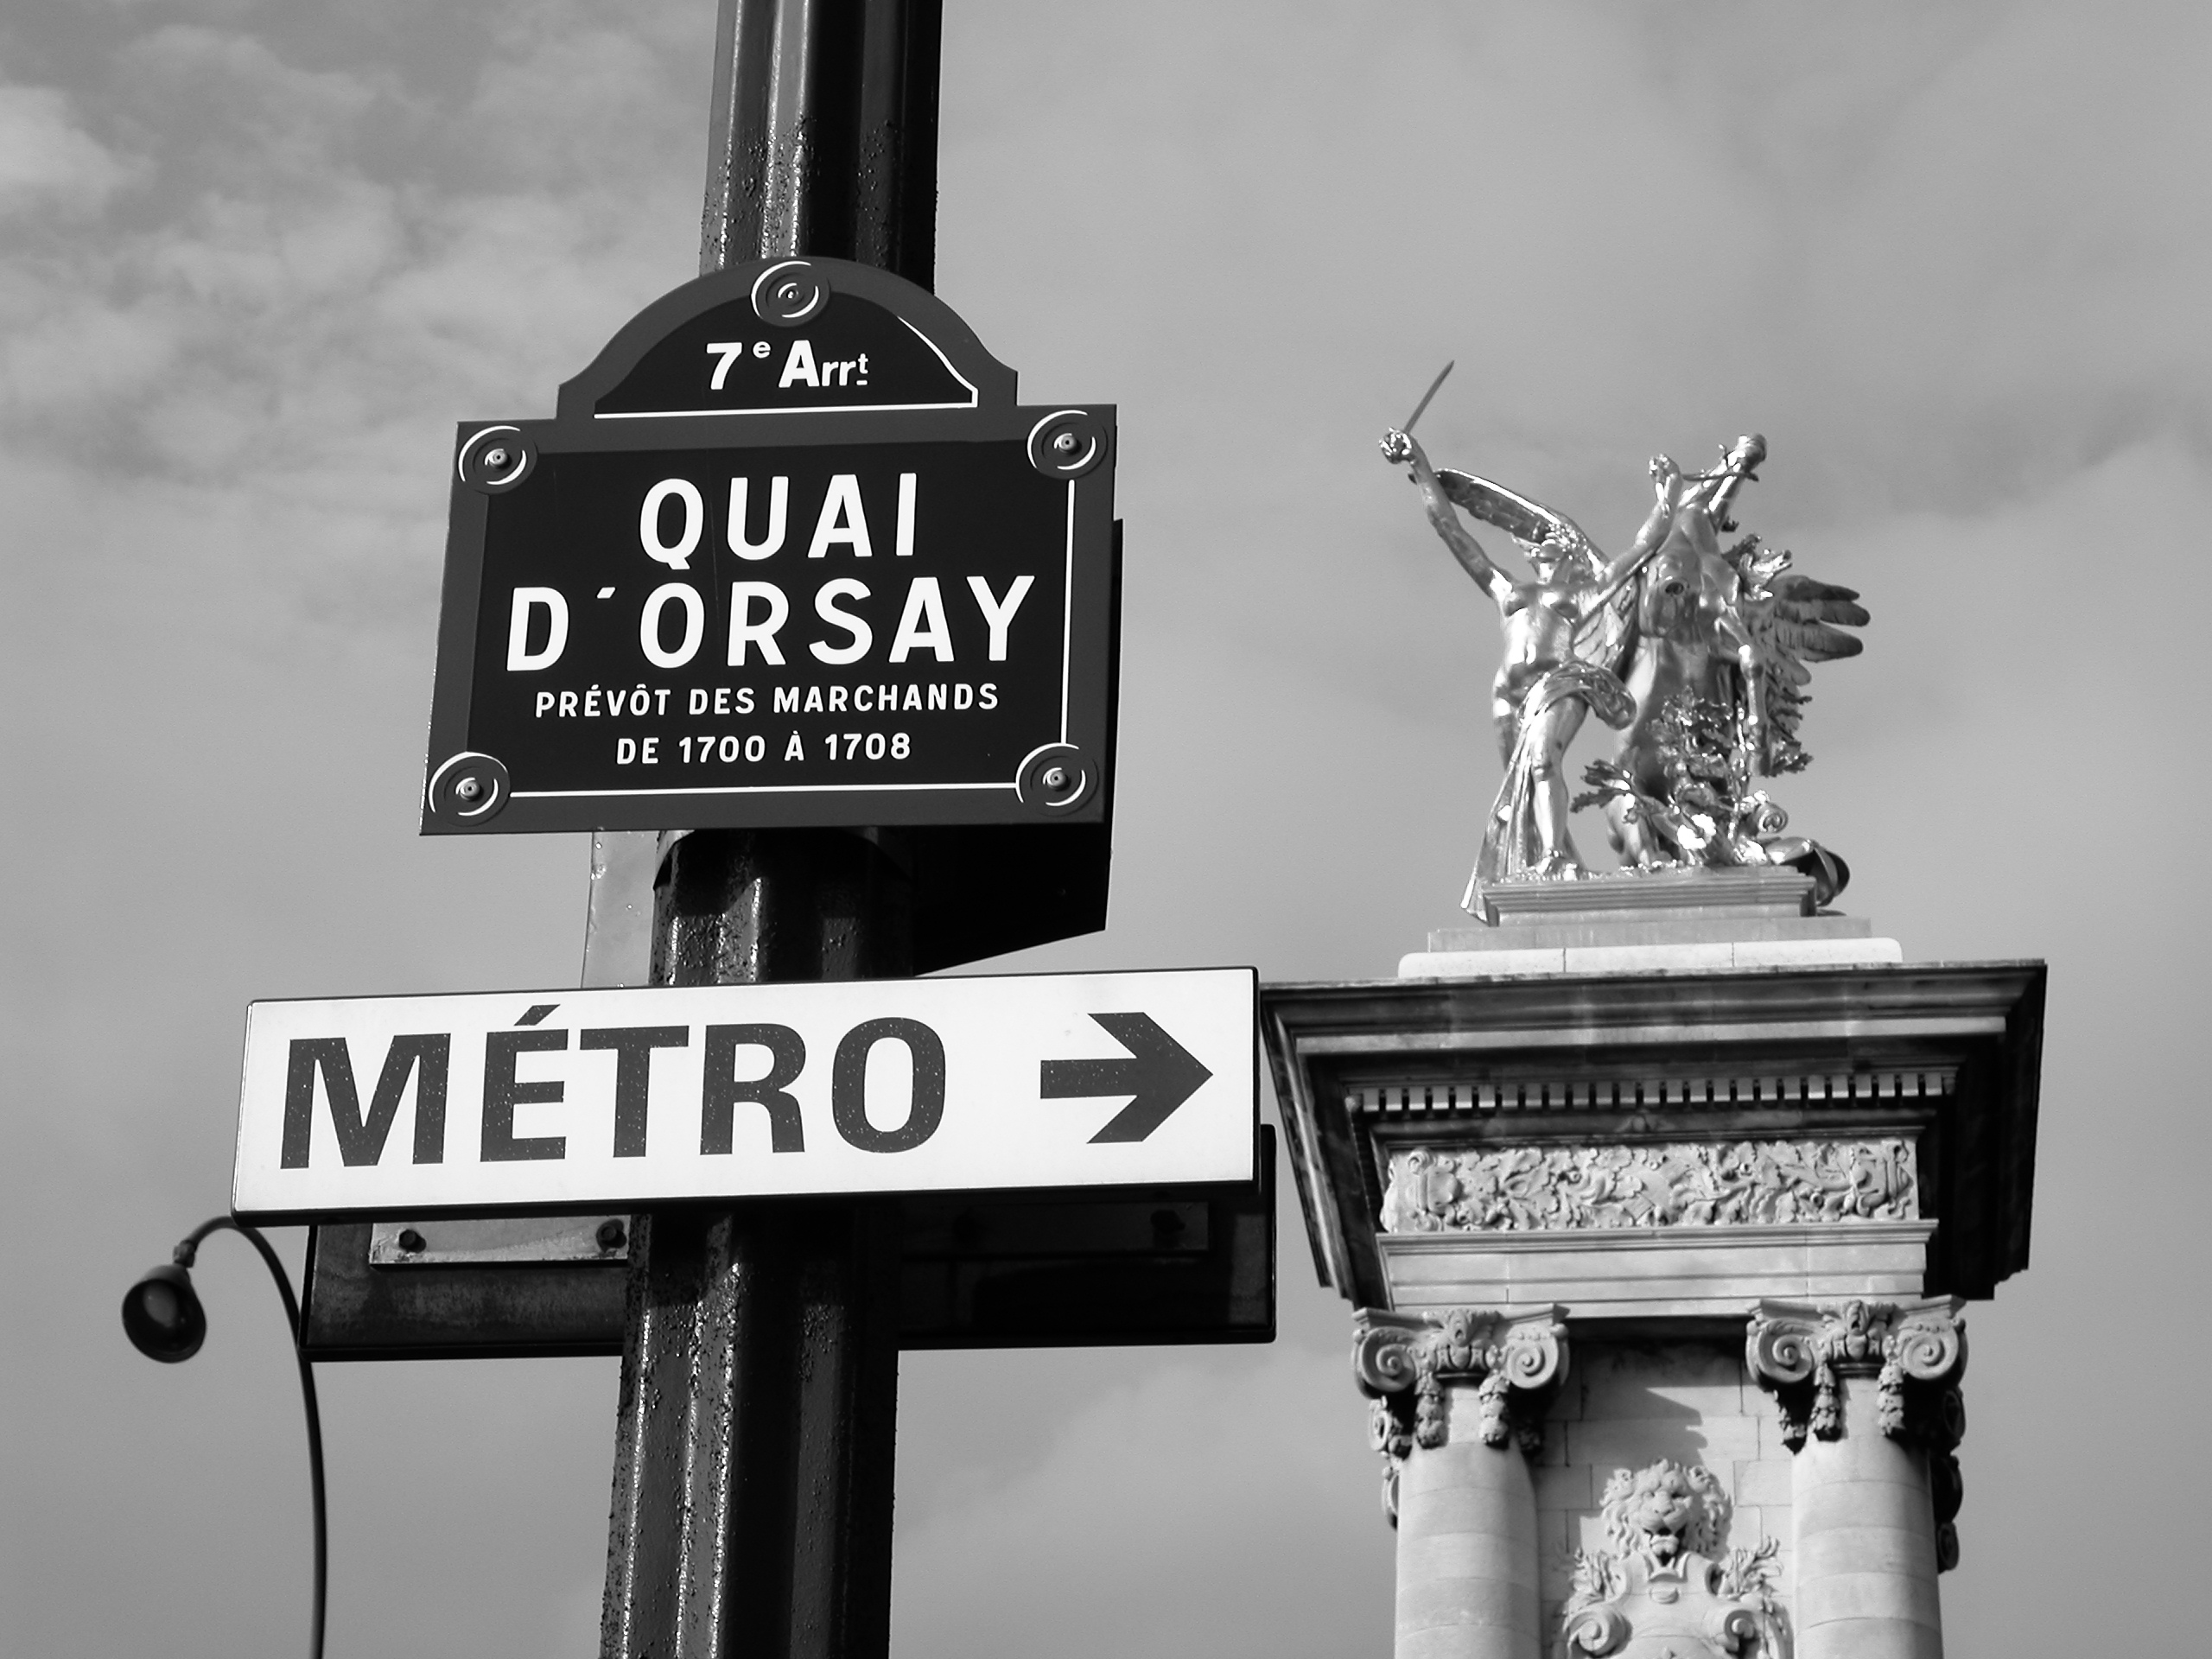 http://upload.wikimedia.org/wikipedia/commons/1/13/Quai_D%27Orsay_Paris.JPG